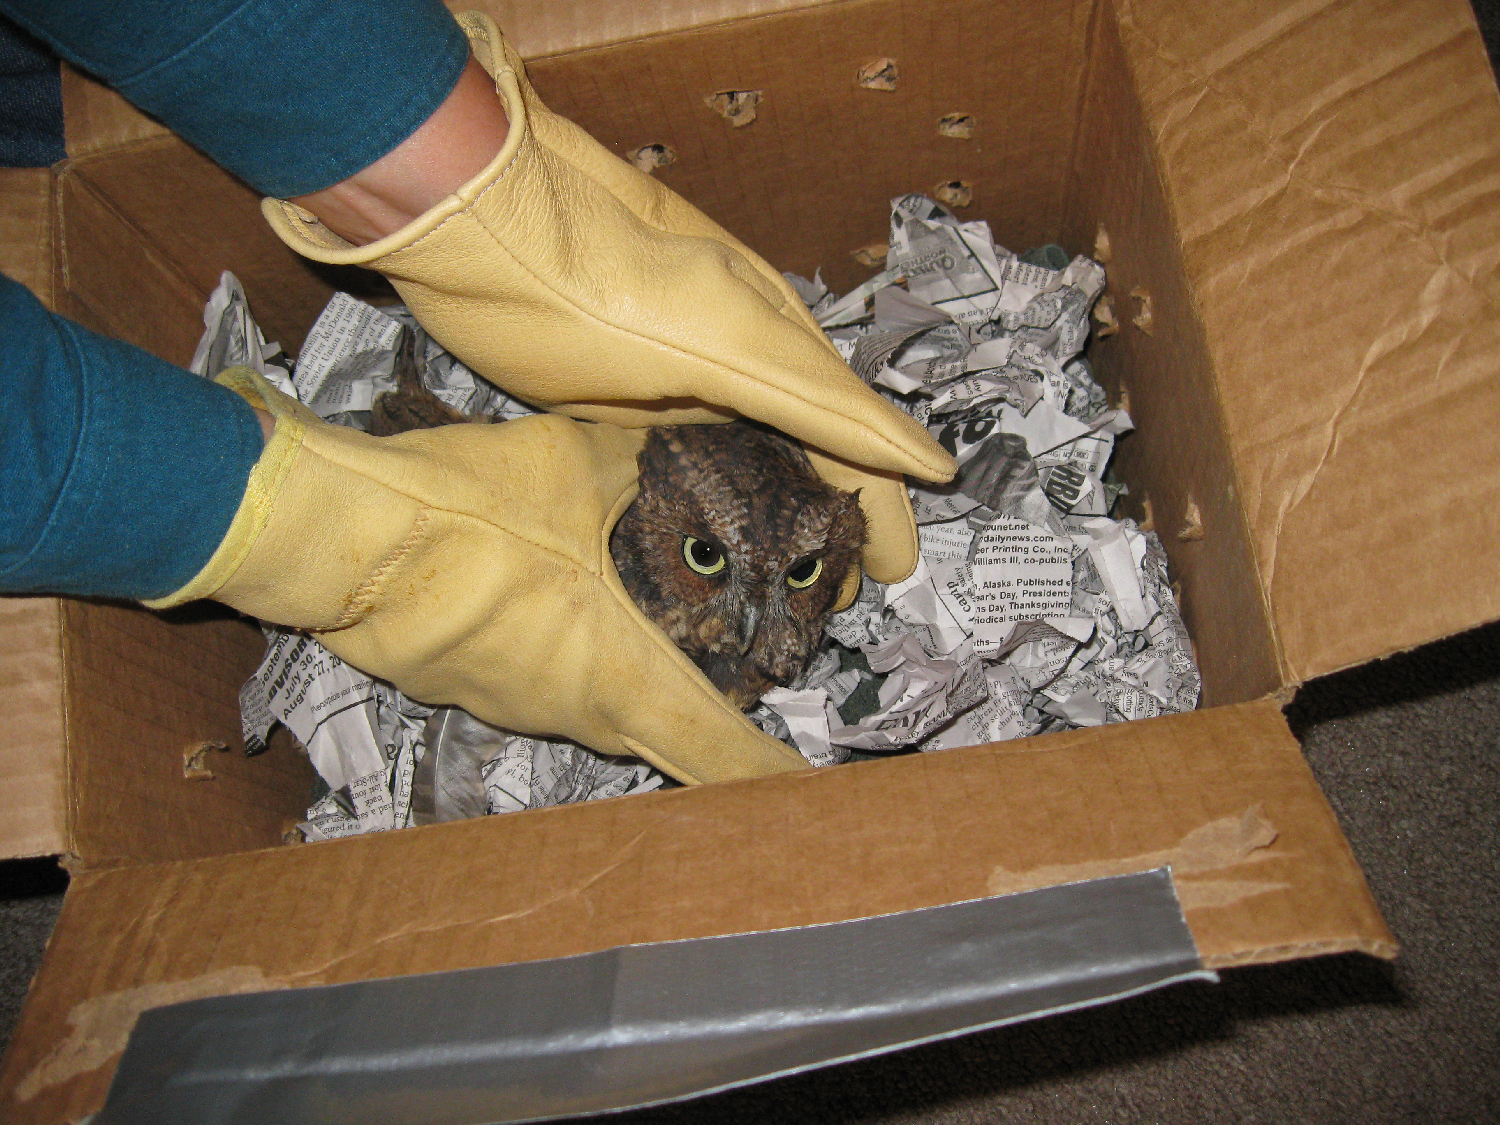 Putting Thorne into a box to send him to the Alaska Raptor Center in Sitka.